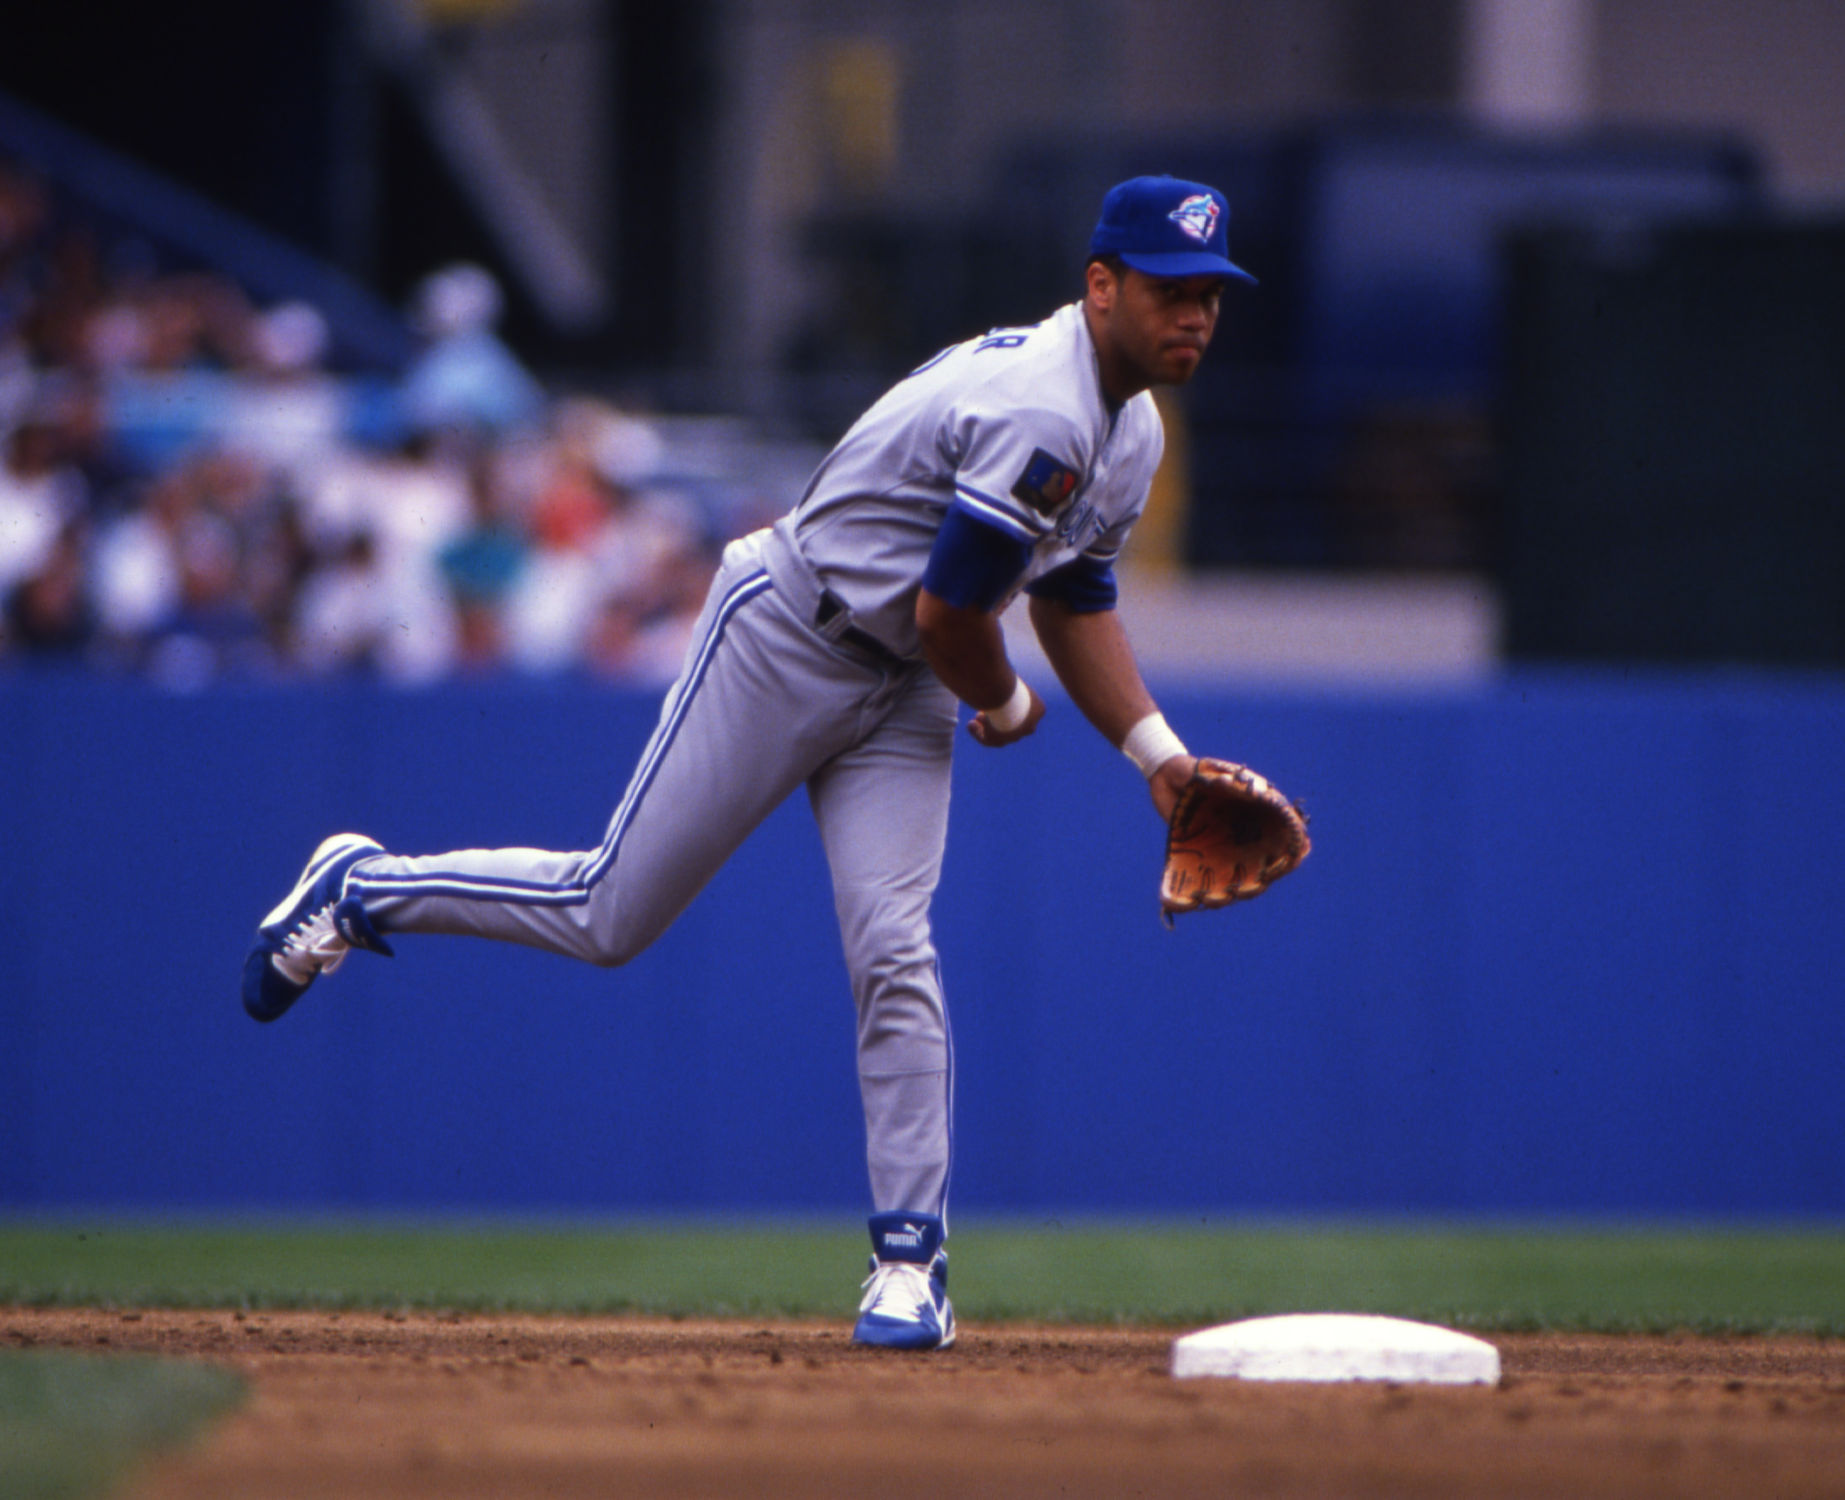 Image result for roberto alomar blue jays